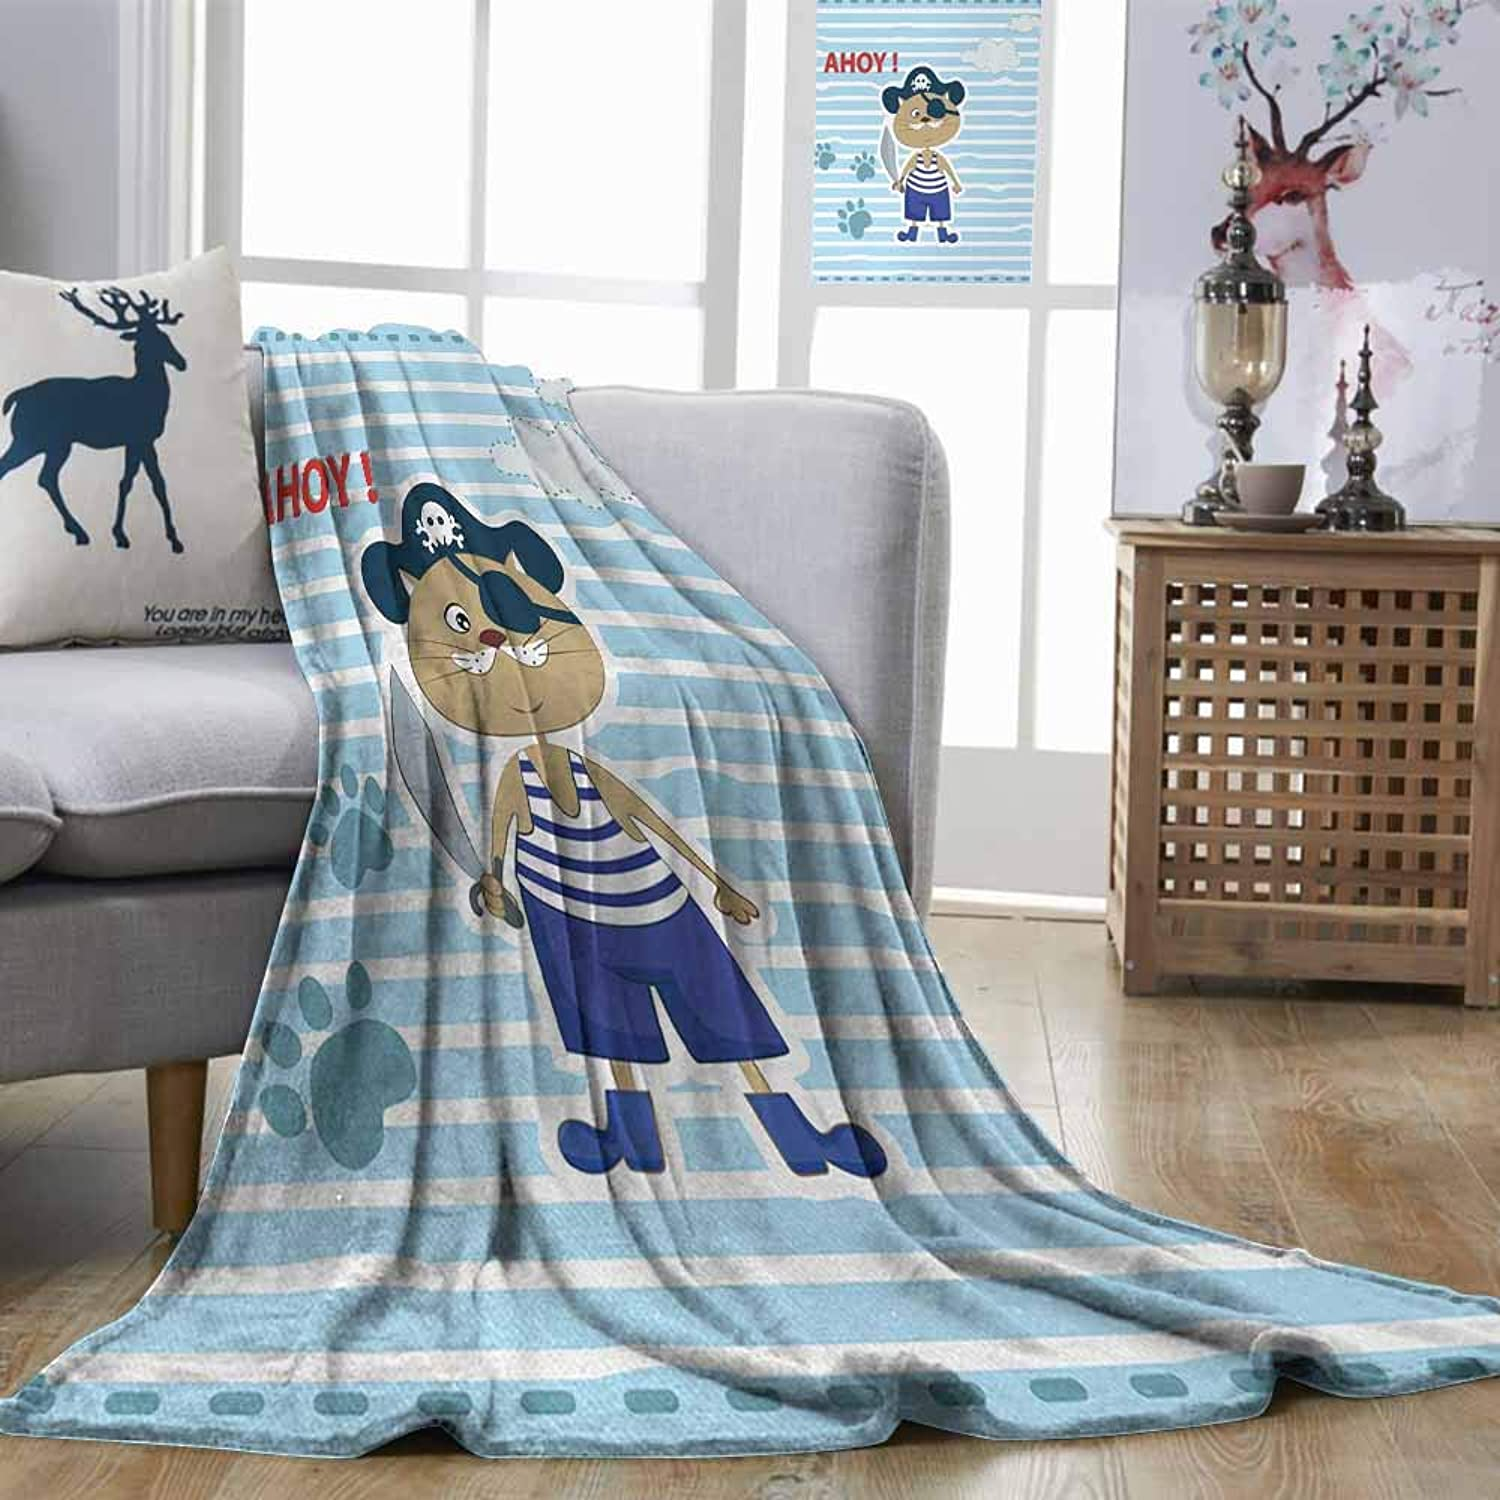 Zmstroy Fashion Throwing Blanket Ahoy Its a Boy Cute Cat Pirate Funny Paws Clouds Maritime Striped Framework Turquoise purple bluee Red Traveling,Hiking,Camping,Full Queen,TV,Cabin W51 xL60